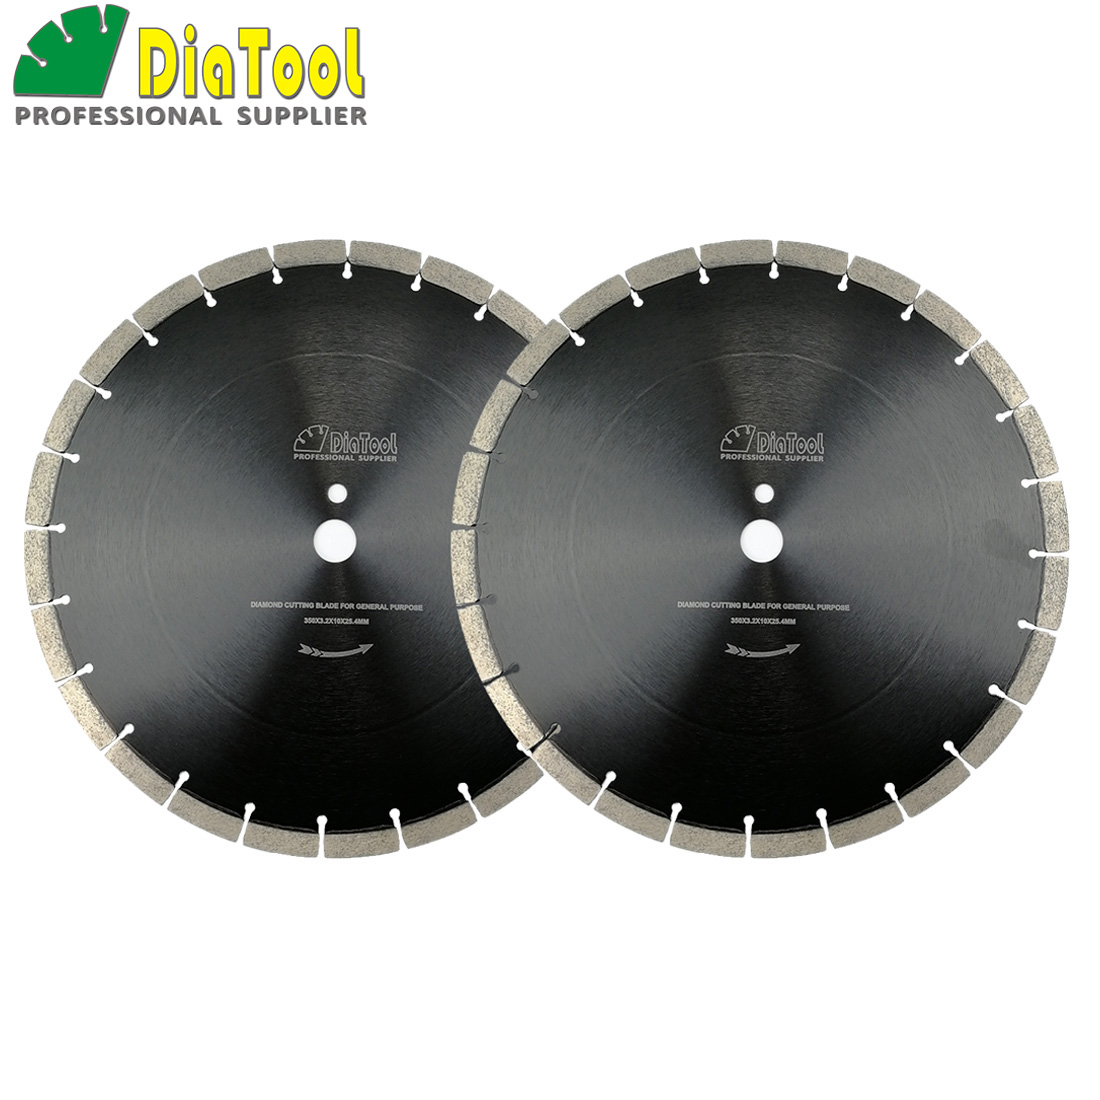 DIATOOL 2pcs/pk 14inch/360mm Professional segmented Sintered Diamond saw blade Wet Cutting Disc for concrete Block Paver 2 pcs super thin sintered diamond blade cutting disc for jade agate stone wet grinding with cooling water jgs031